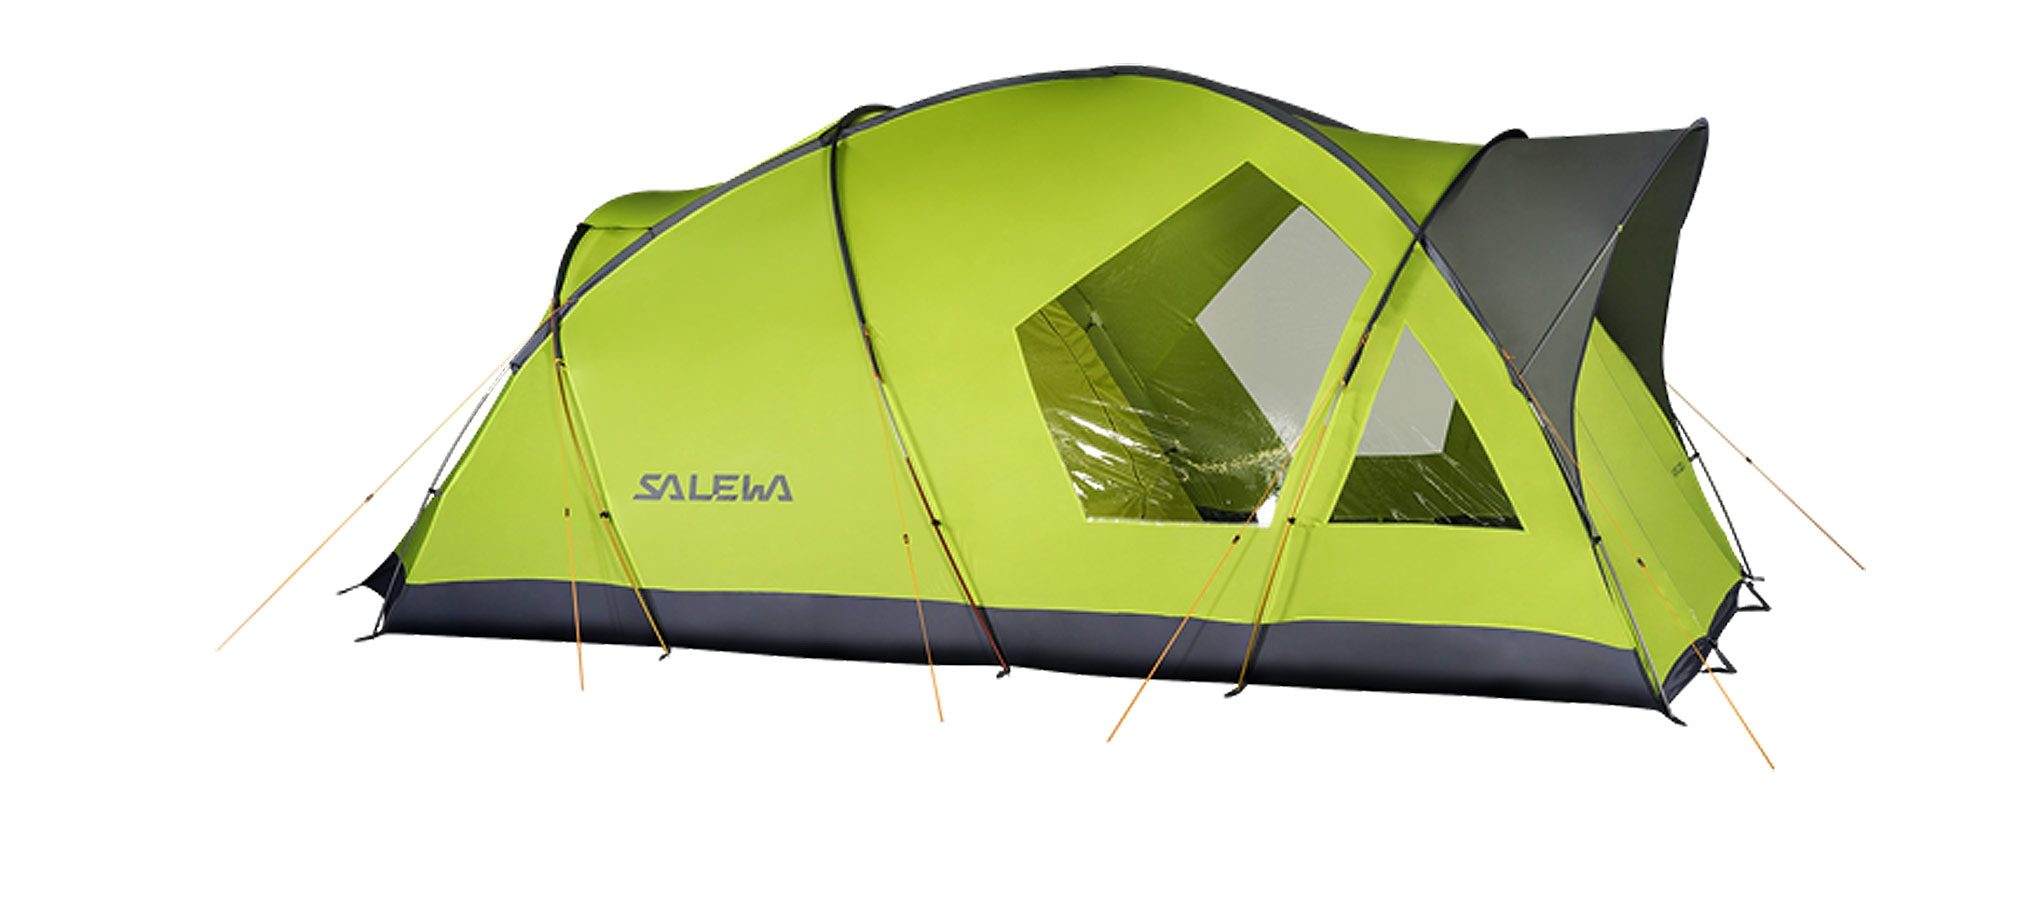 Salewa Zelt »Alpine Lodge IV Tent«